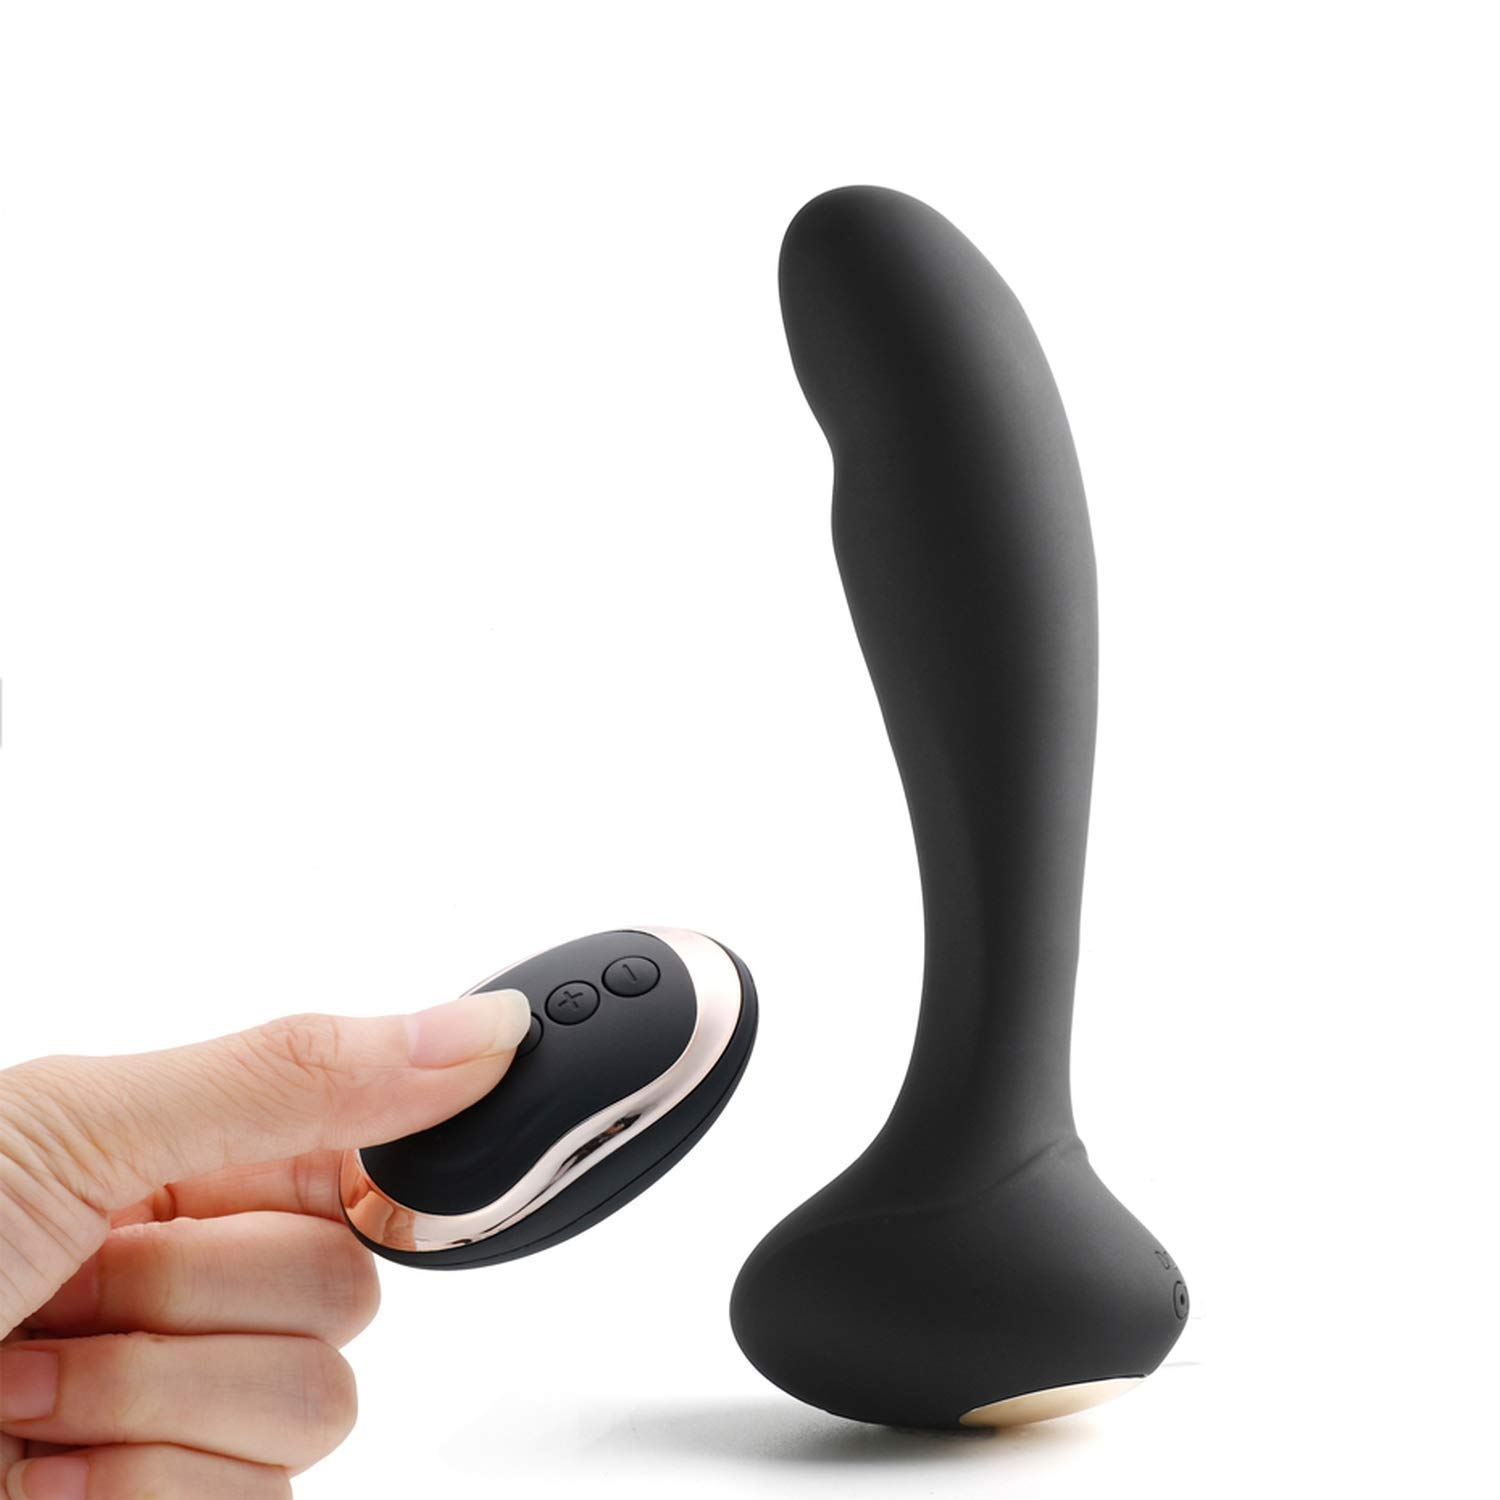 Female Adult Products 10 Speed Waterproof Remote Control Wireless G-Spot Stimulation Vibrator Rechargeable Vibrating Anal Prostate Massager